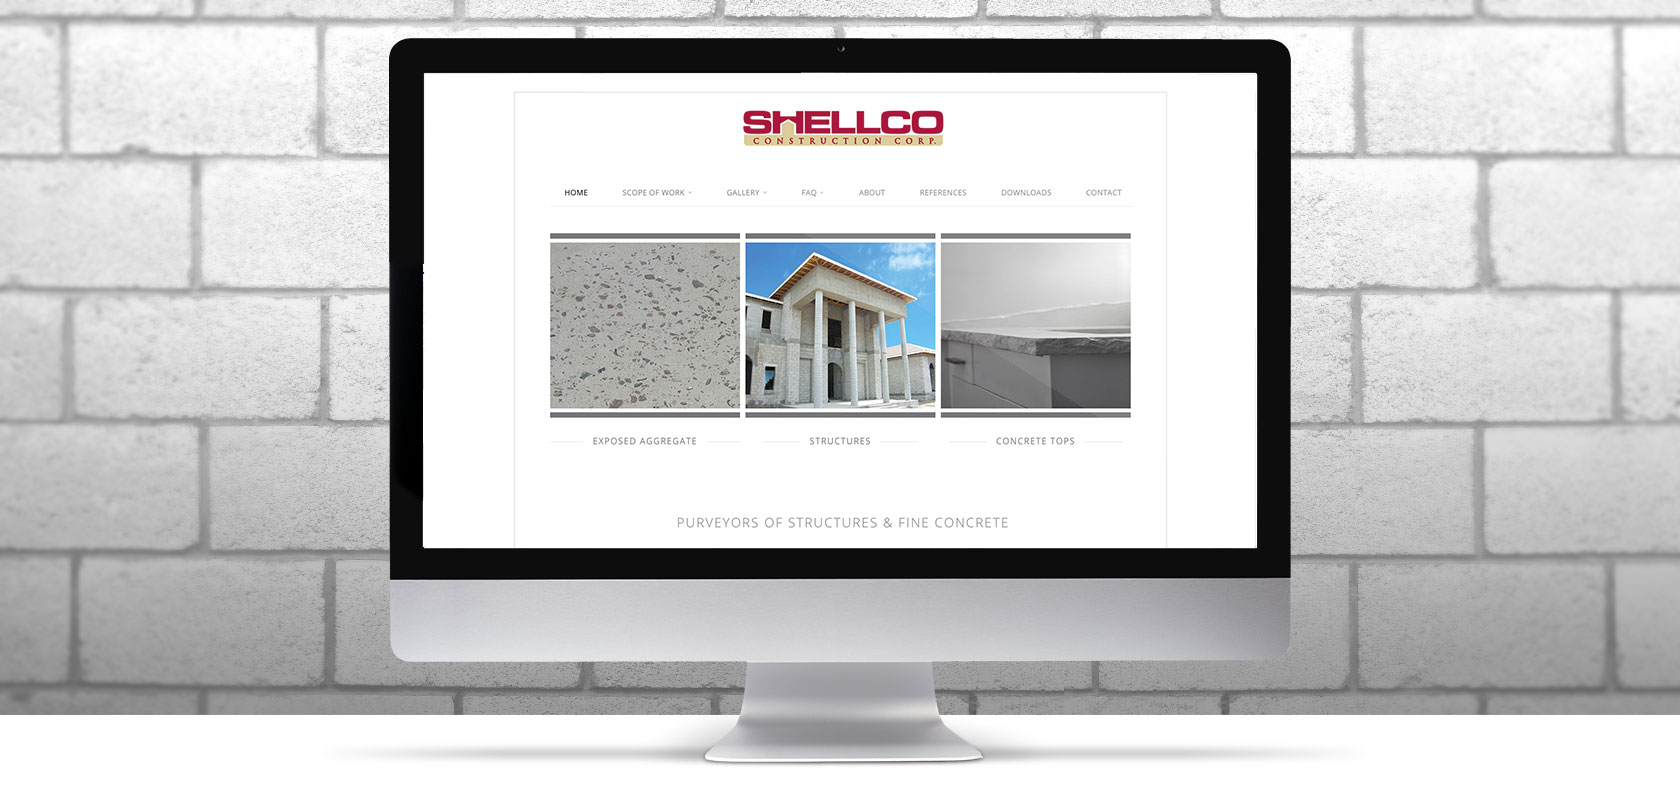 shellco-website